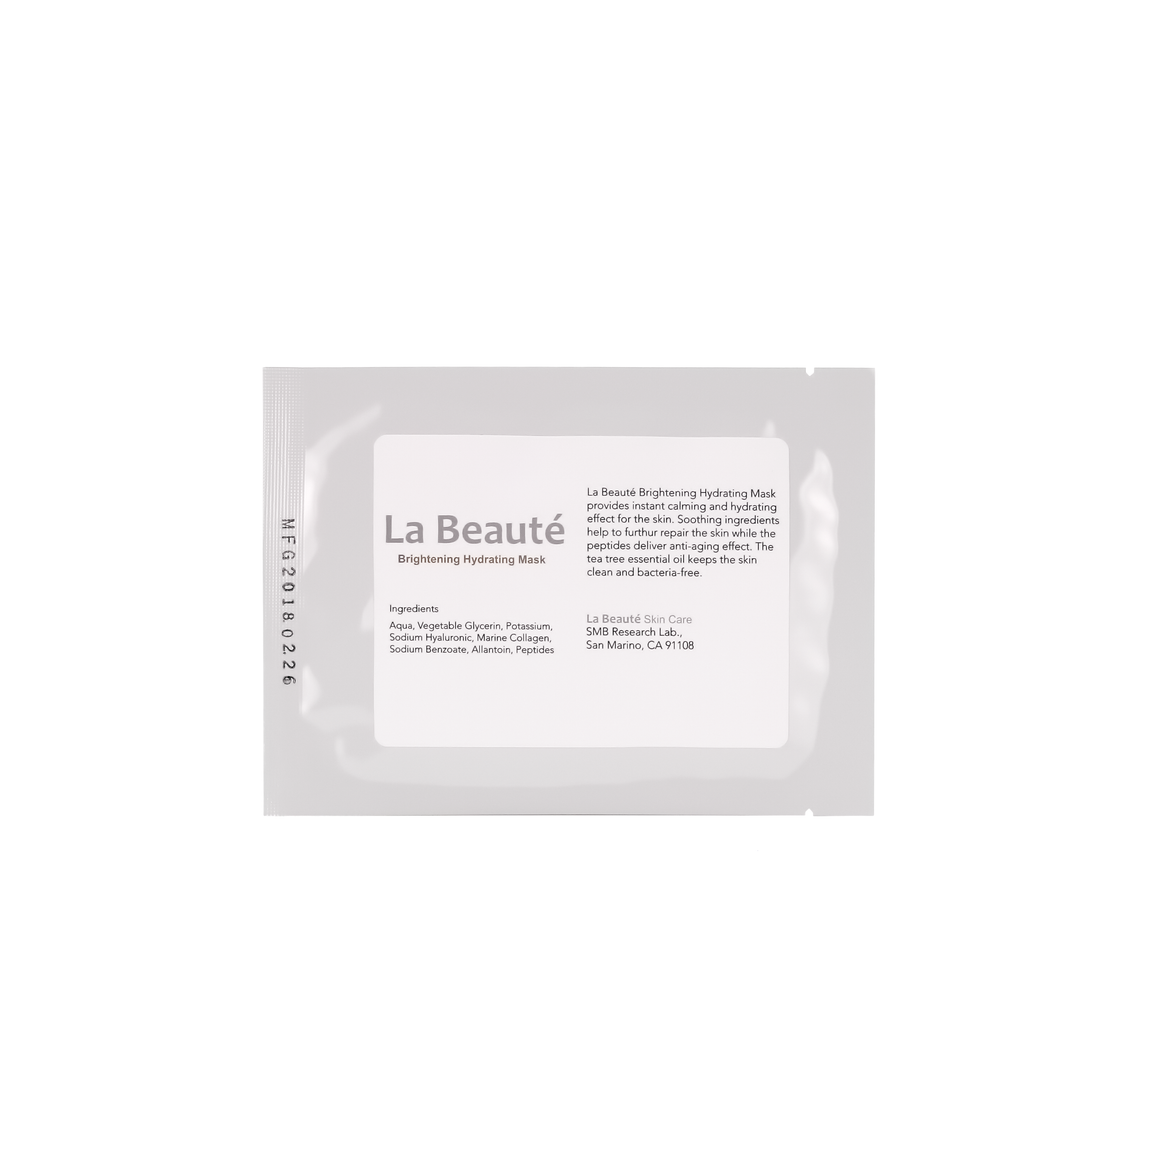 La Beaute - Brightening Hydrating Mask ( 1 sheet )